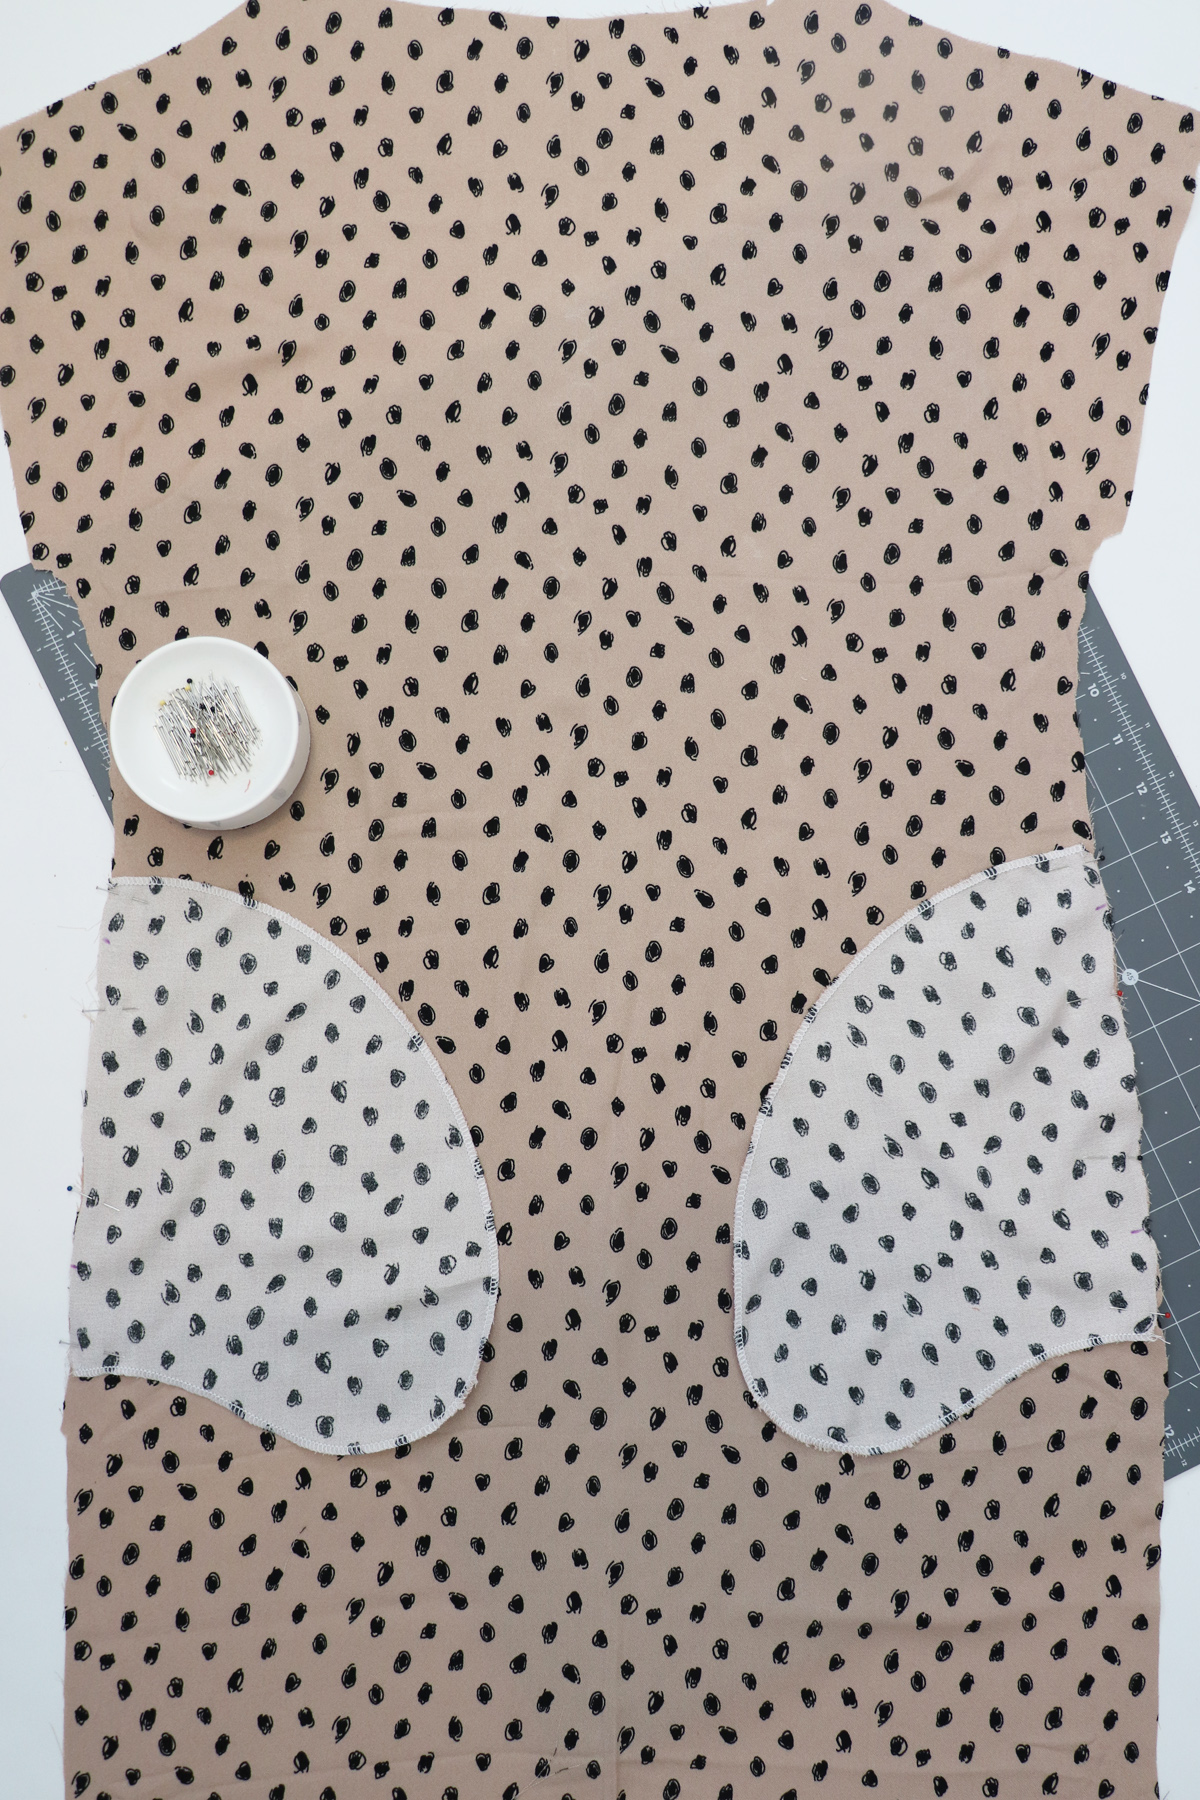 How to make a shift dress with pockets with the Olive top by Megan Nielsen Patterns